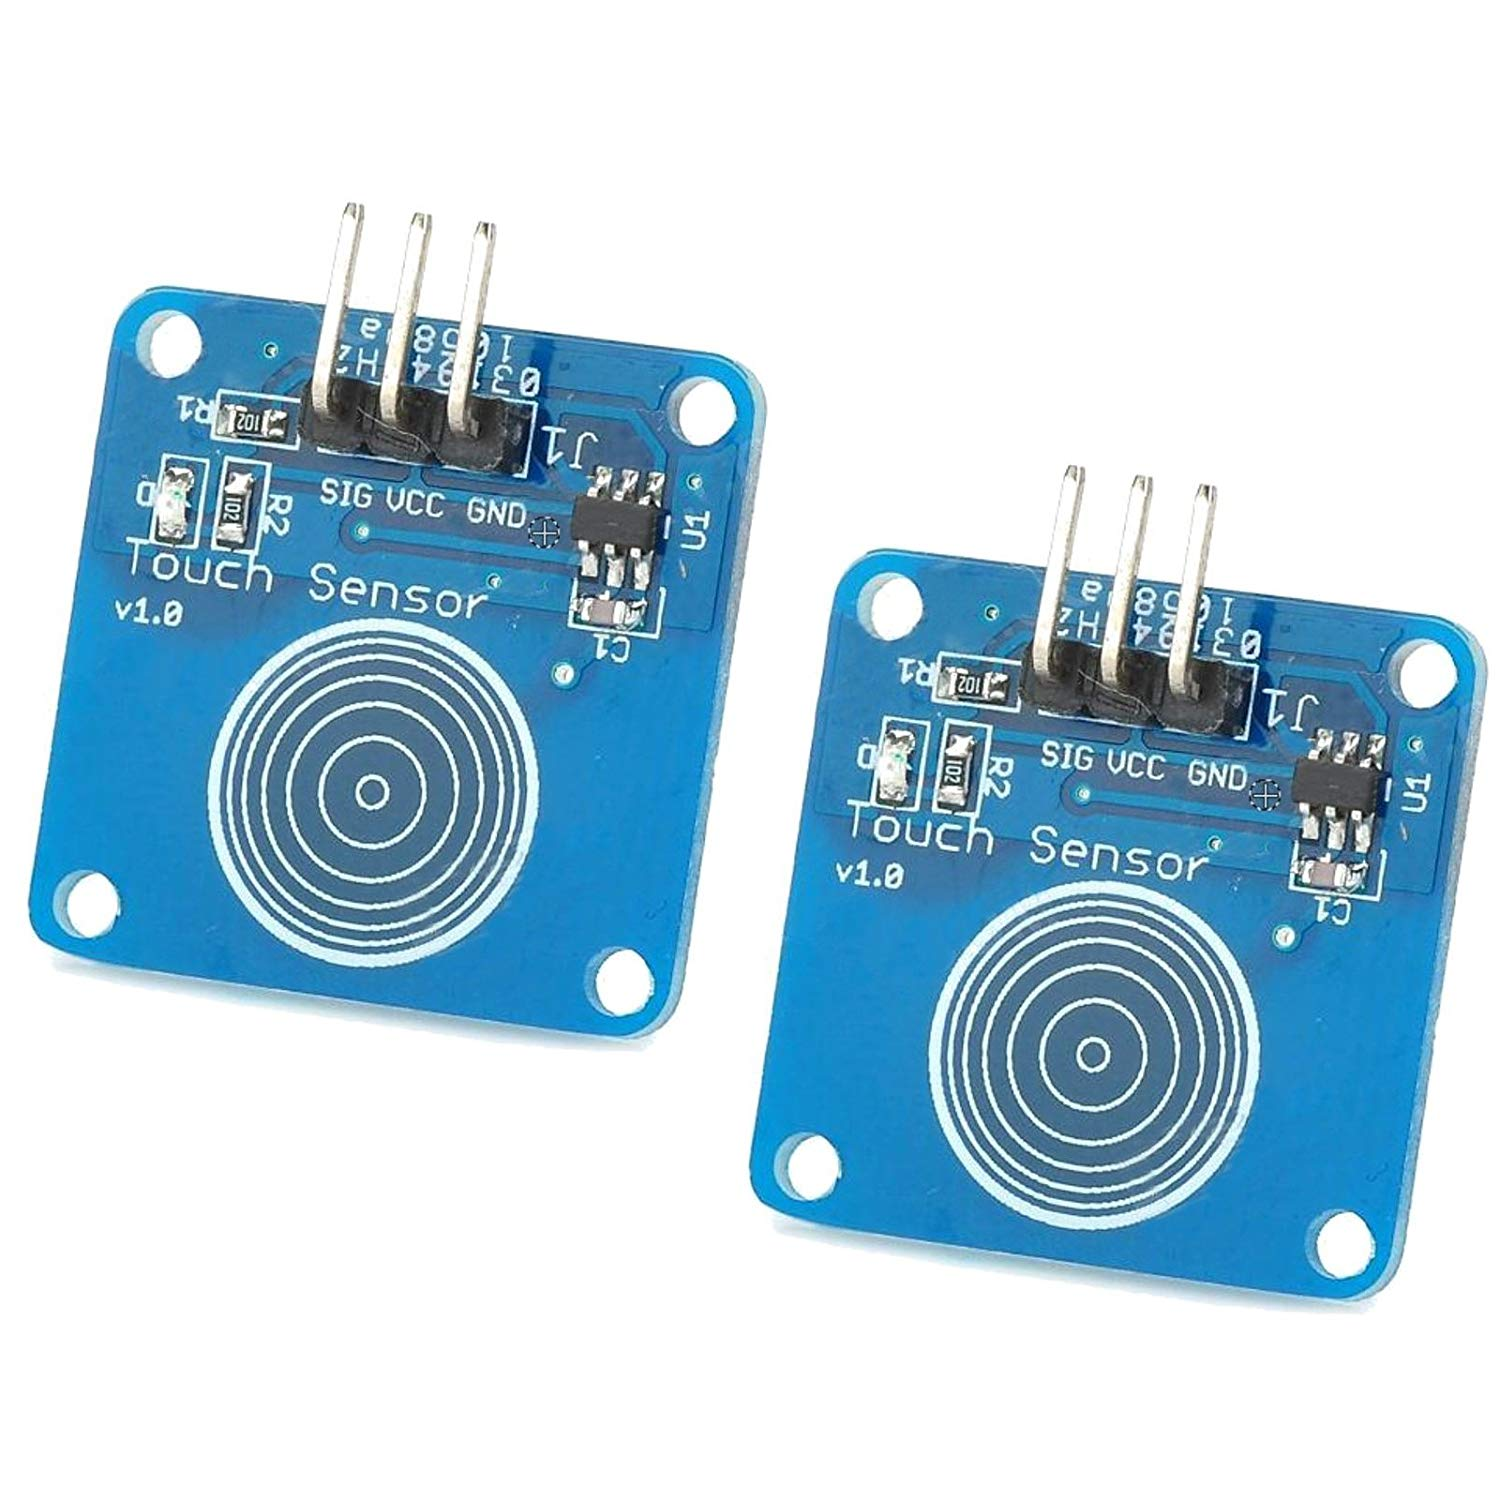 Optimus Electric 2pcs Digital Capacitive Touch Sensor Switch Module TTP223B Based 3 V - 5 V from